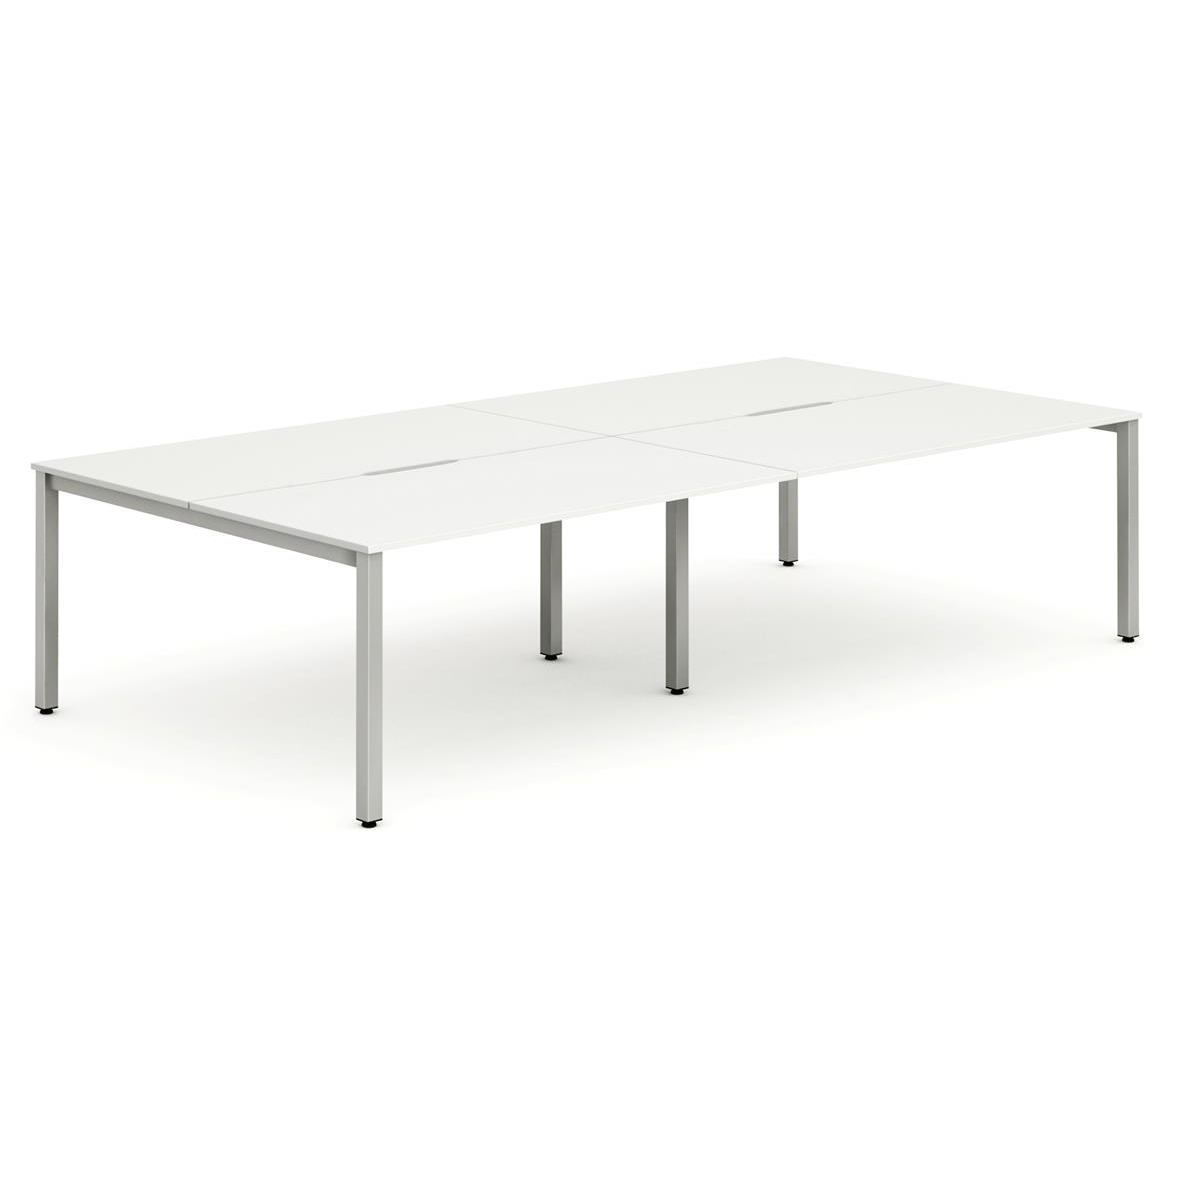 Trexus Bench Desk 4 Person Back to Back Configuration Silver Leg 2800x1600mm White Ref BE255